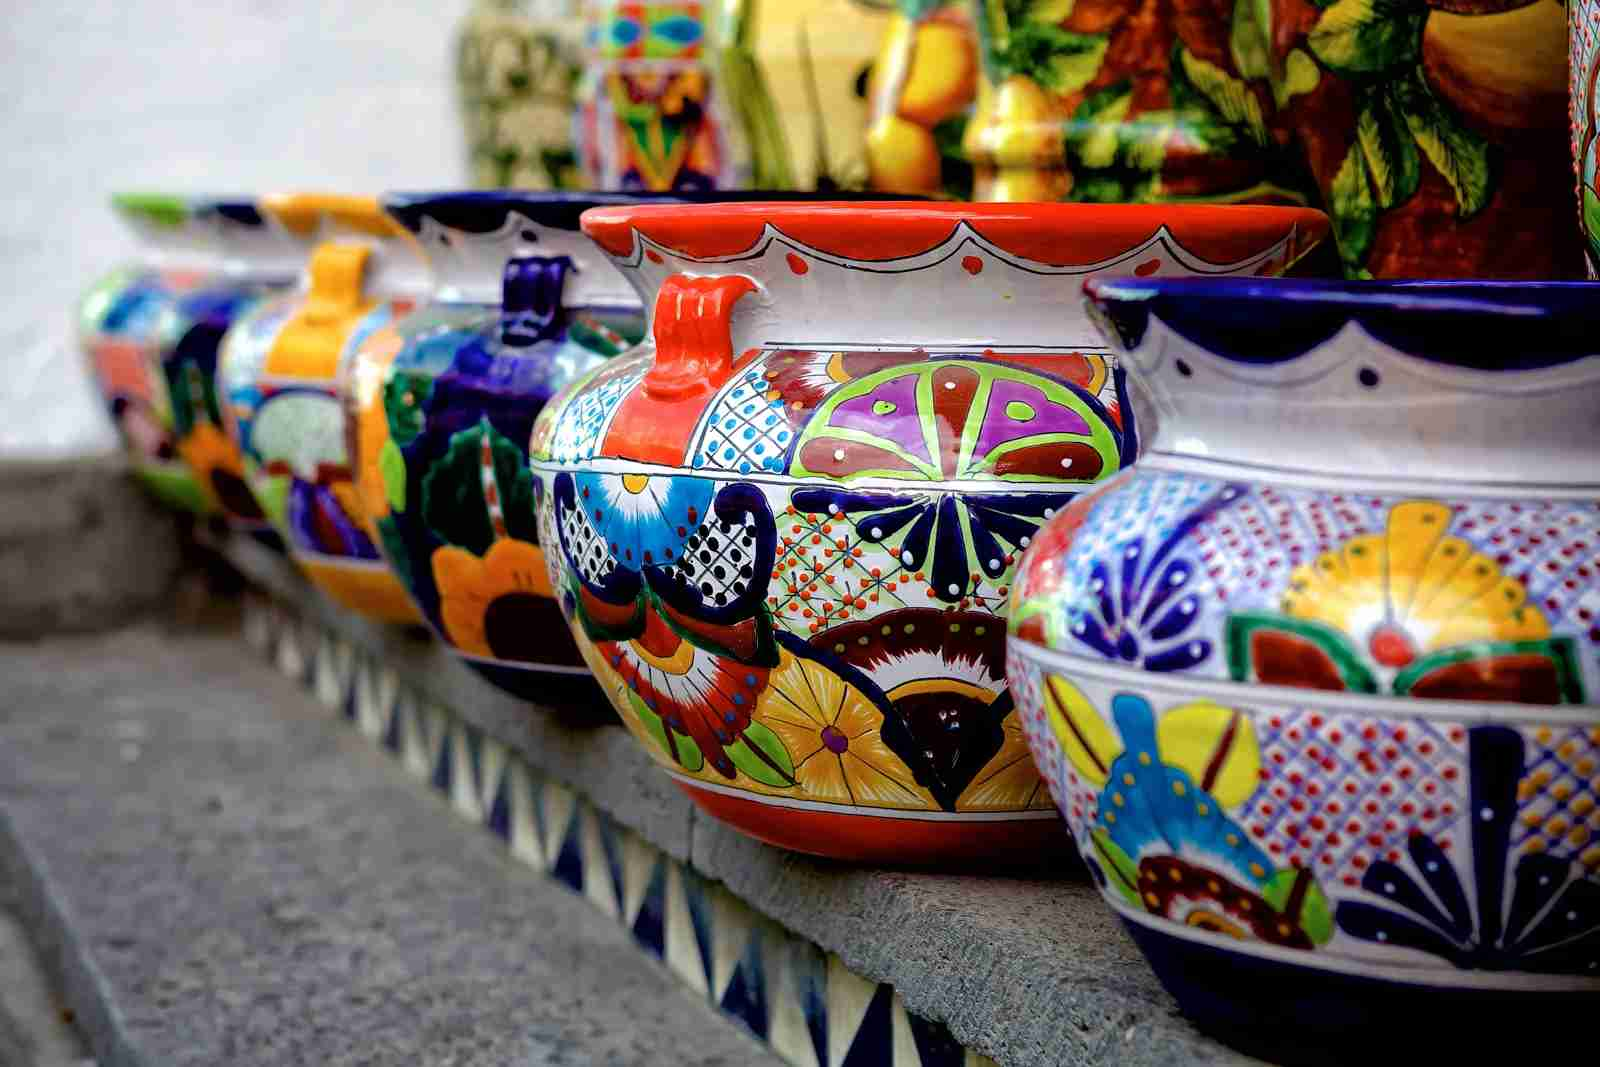 Talavera pottery in Puebla, Mexico. (Photo by marcviln / Getty Images)